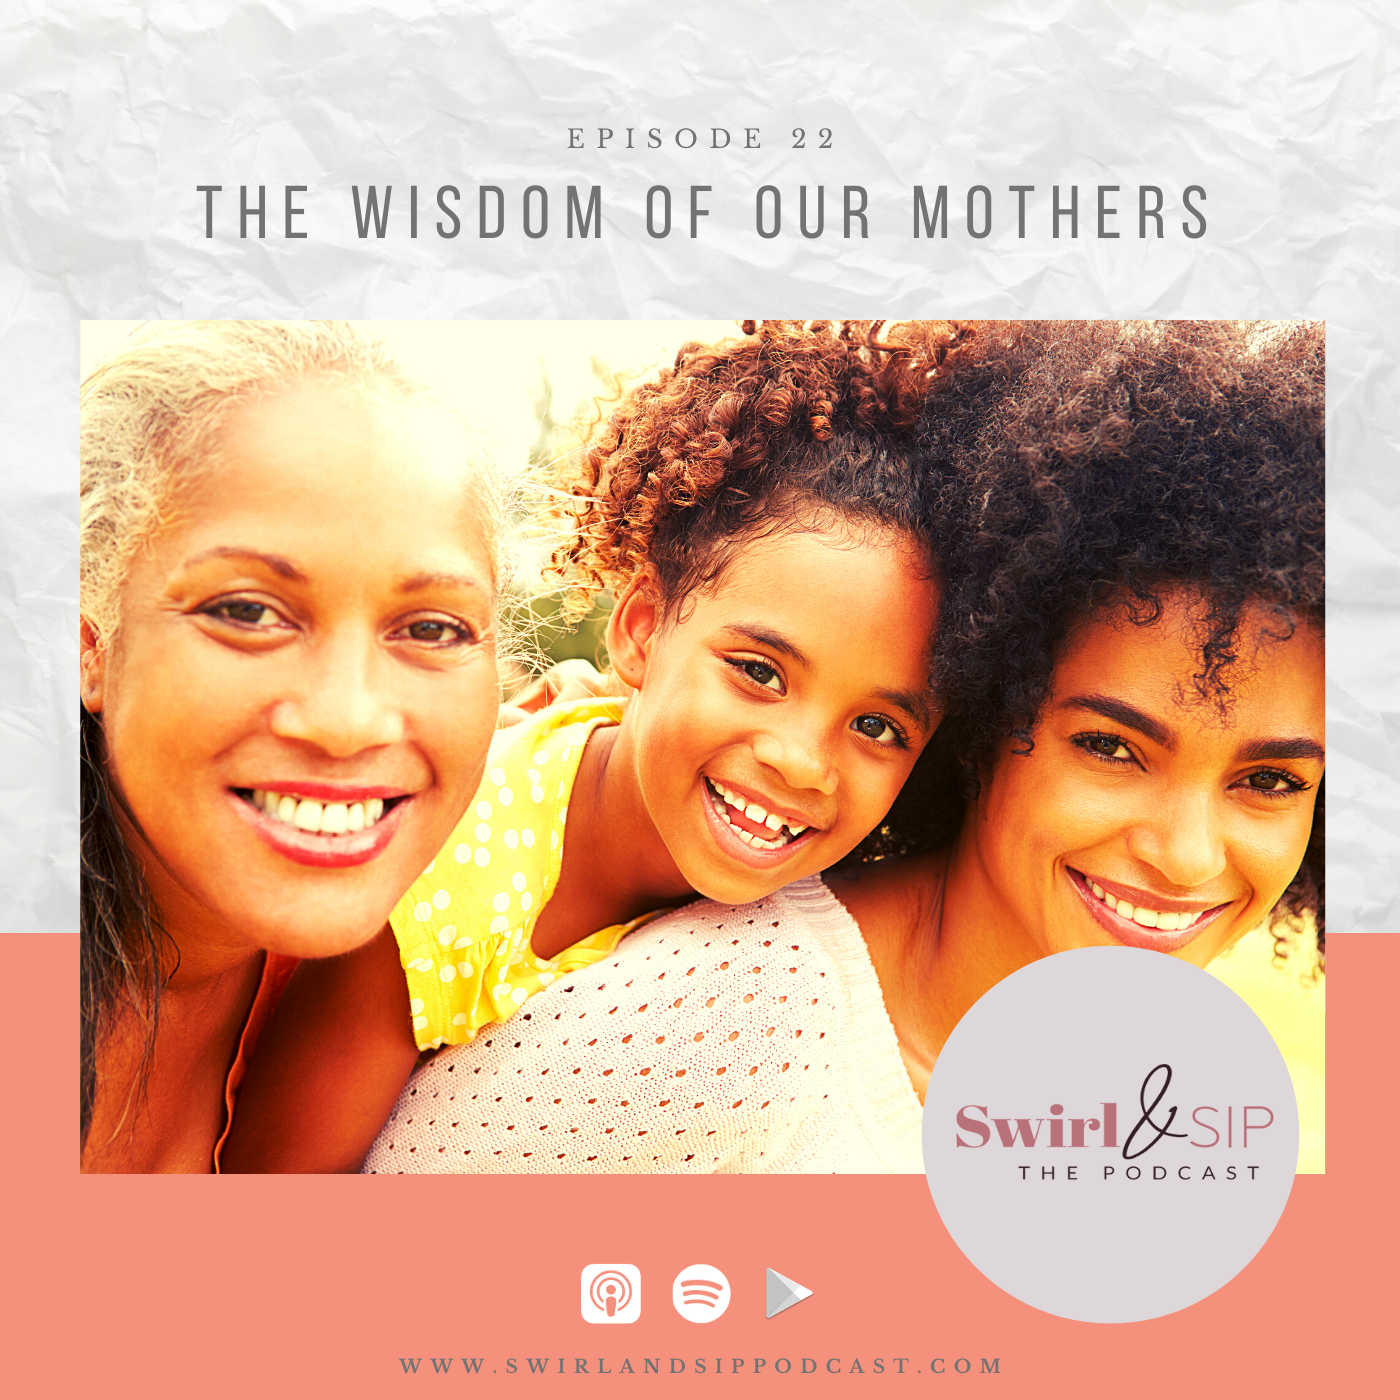 EP 22 - The Wisdom of Our Mothers - How the Mother-Daughter Relationship Changes with Kids - Podcast Cover - Mother, Daughter, Grandmother - www.swirlandsippodcast.com